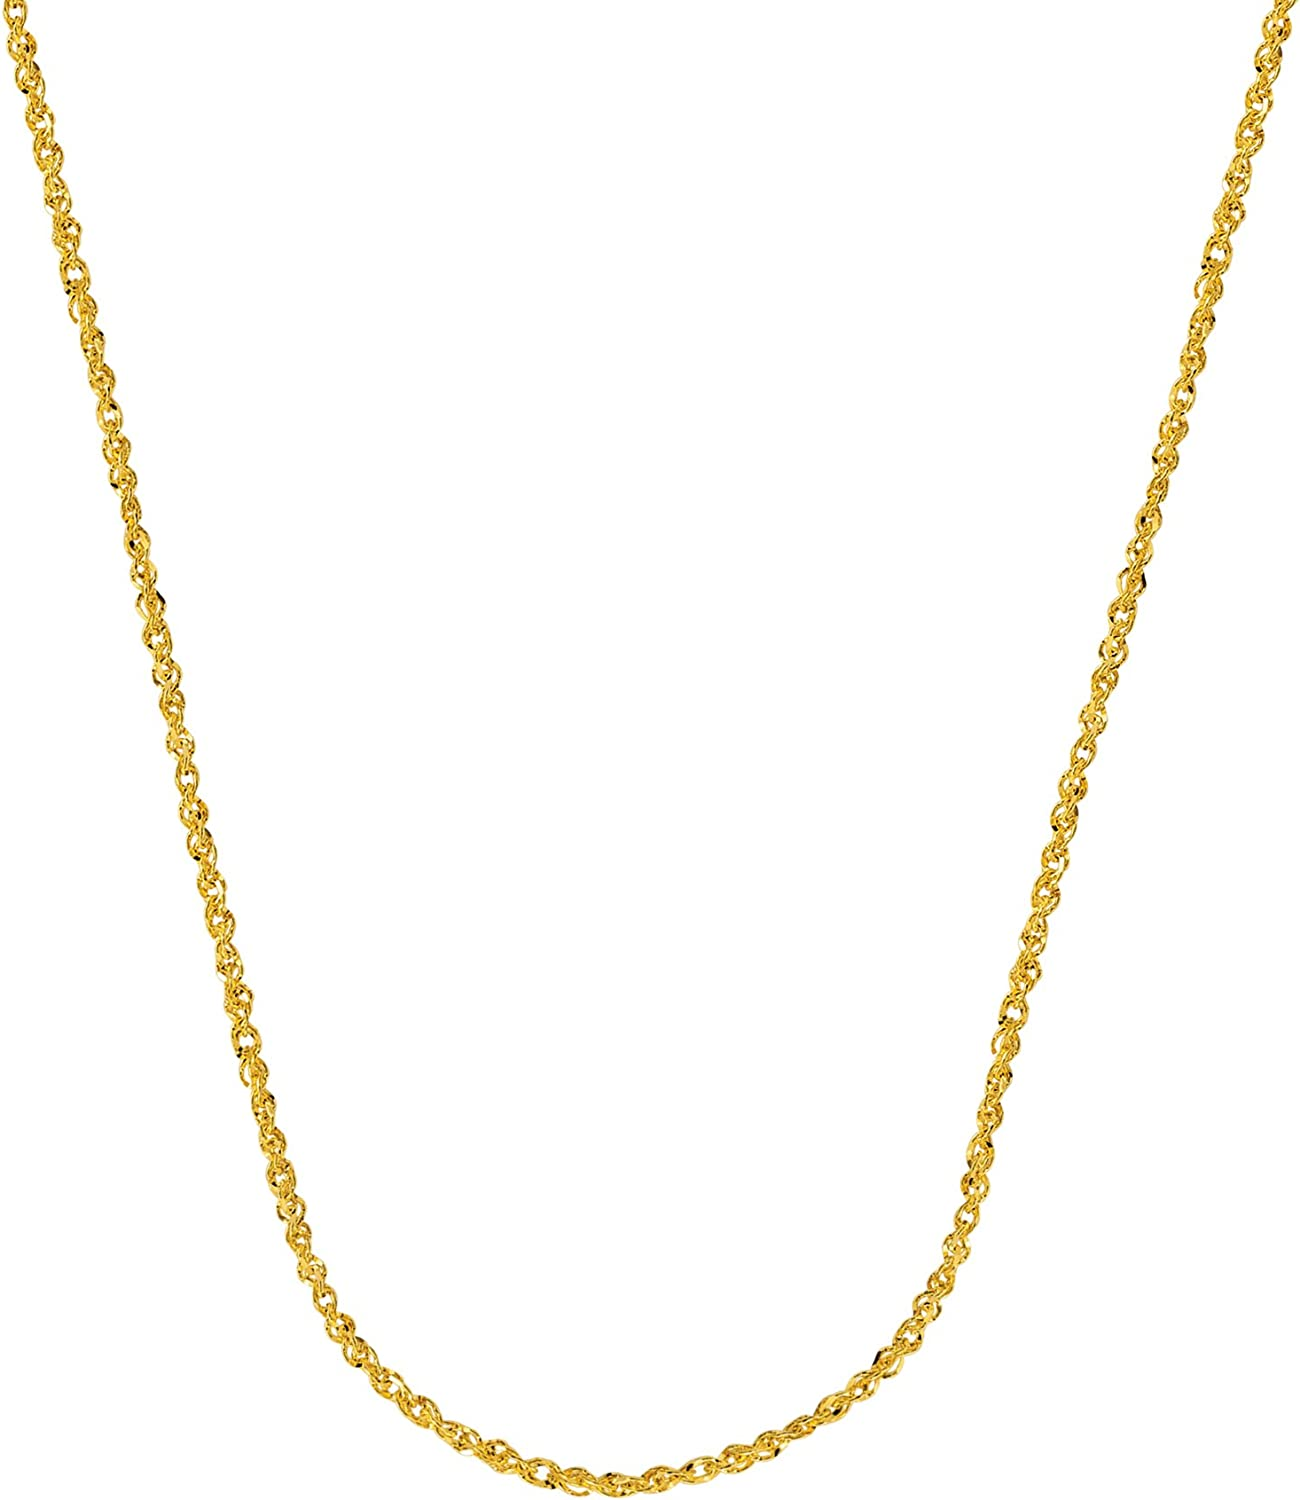 14Kt Gold Sparkle Singapore Chain With Lobster Lock Singapore Chain 20 Inches Long